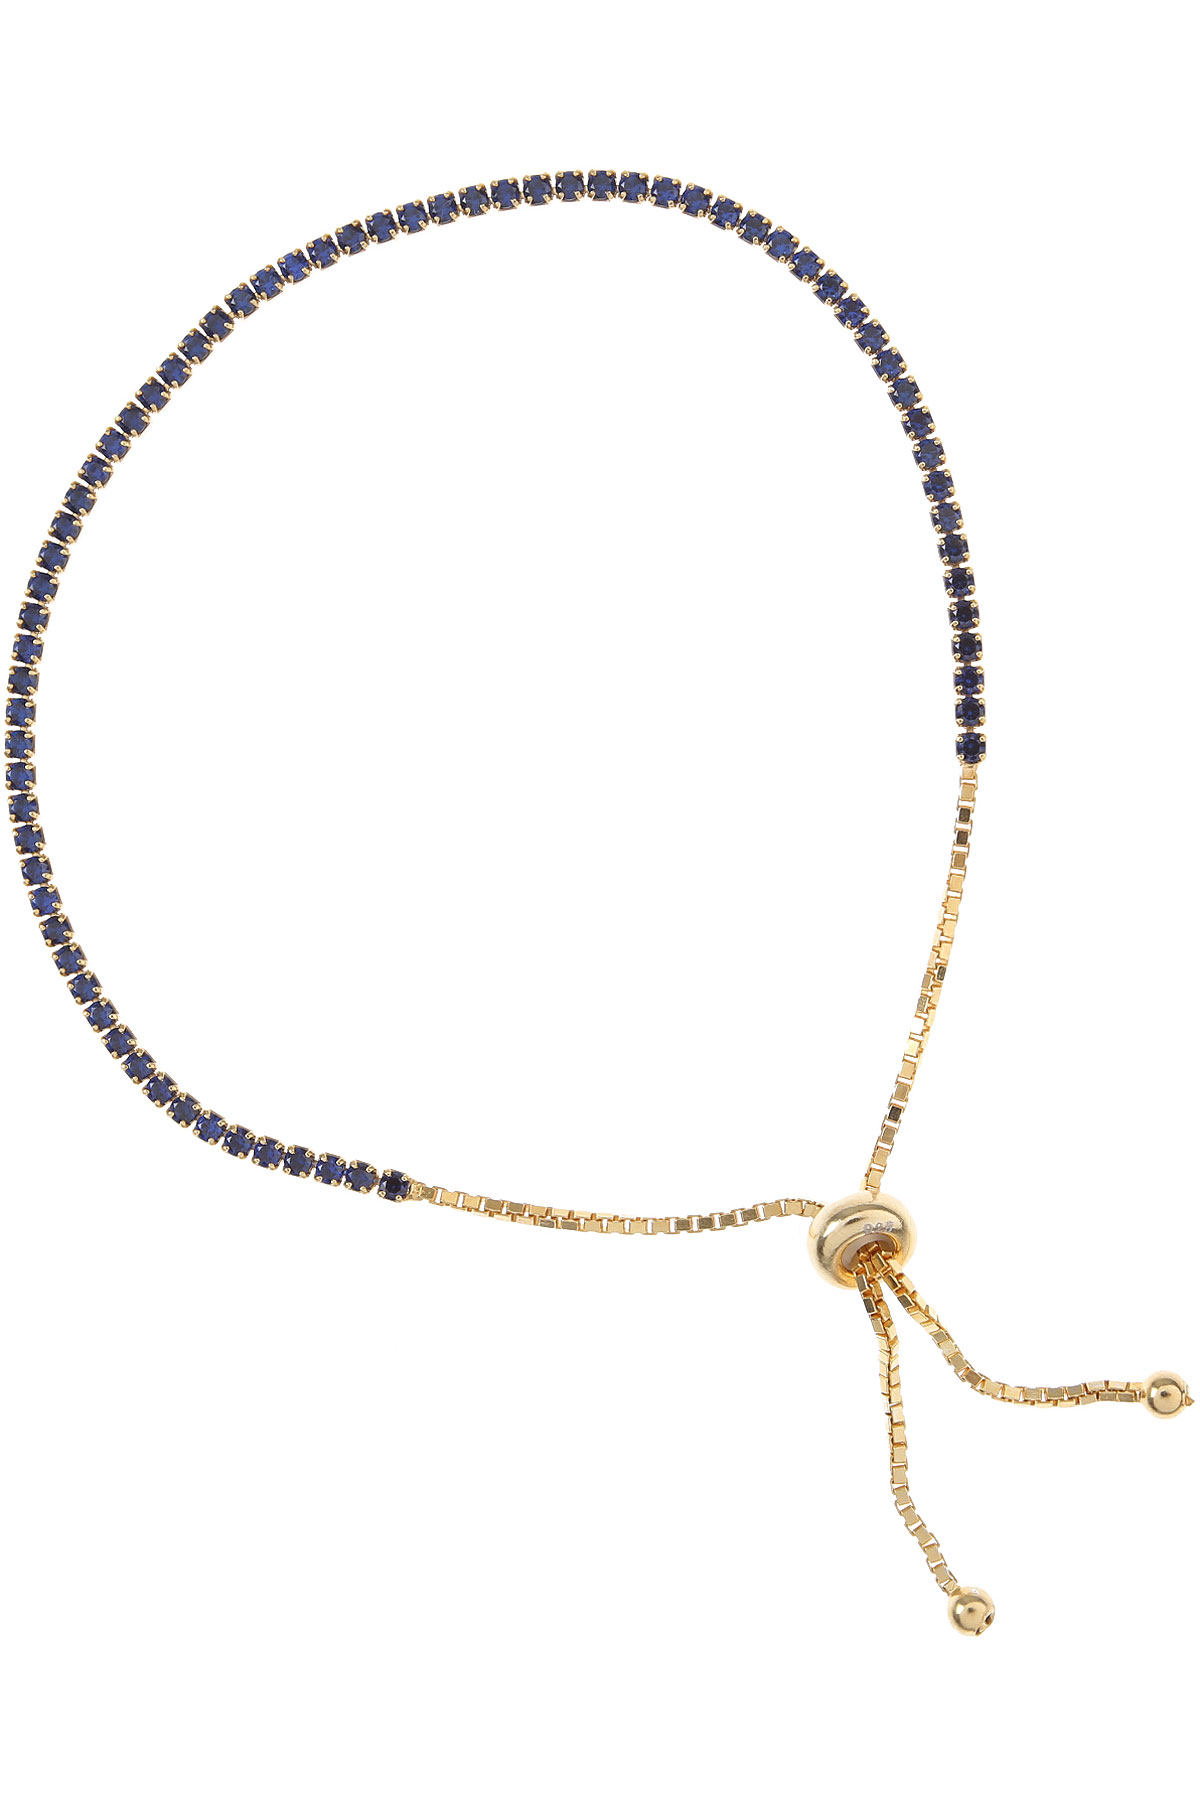 Francesca Angelone Bracelet for Women On Sale, Yellow Gold, Yellow Gold, 2019